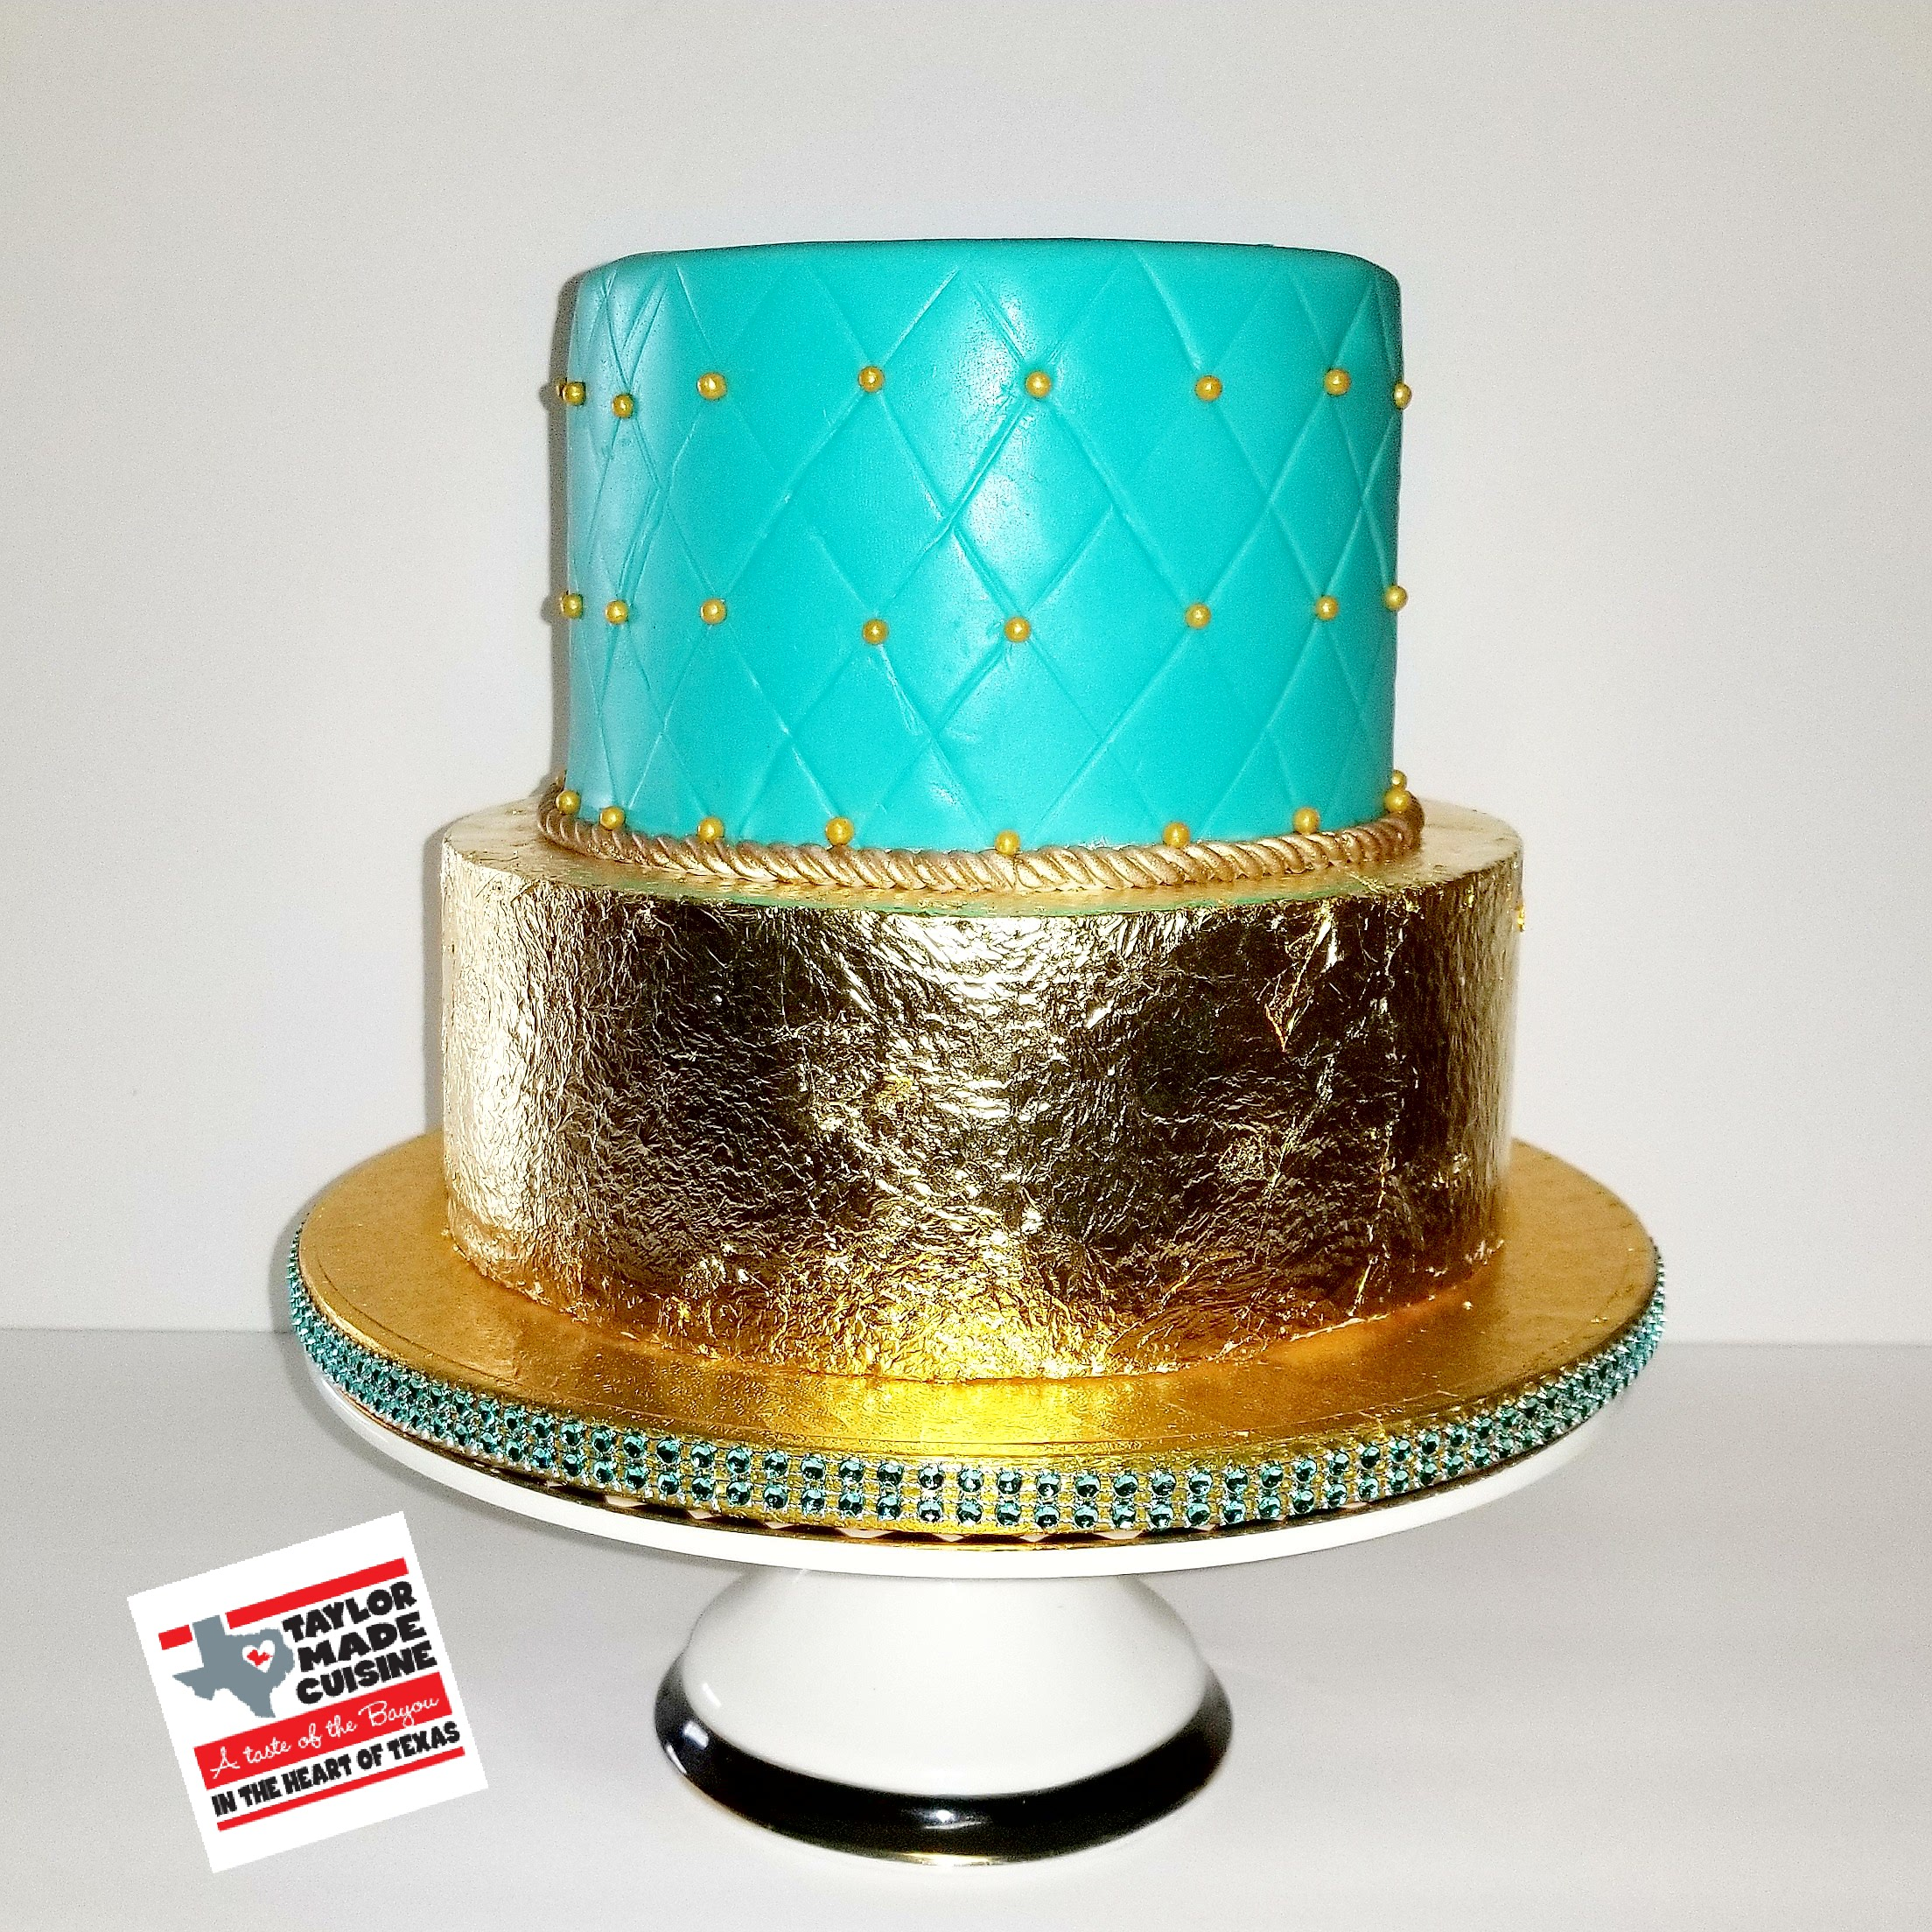 Tiffany Blue & Gold Birthday Cake